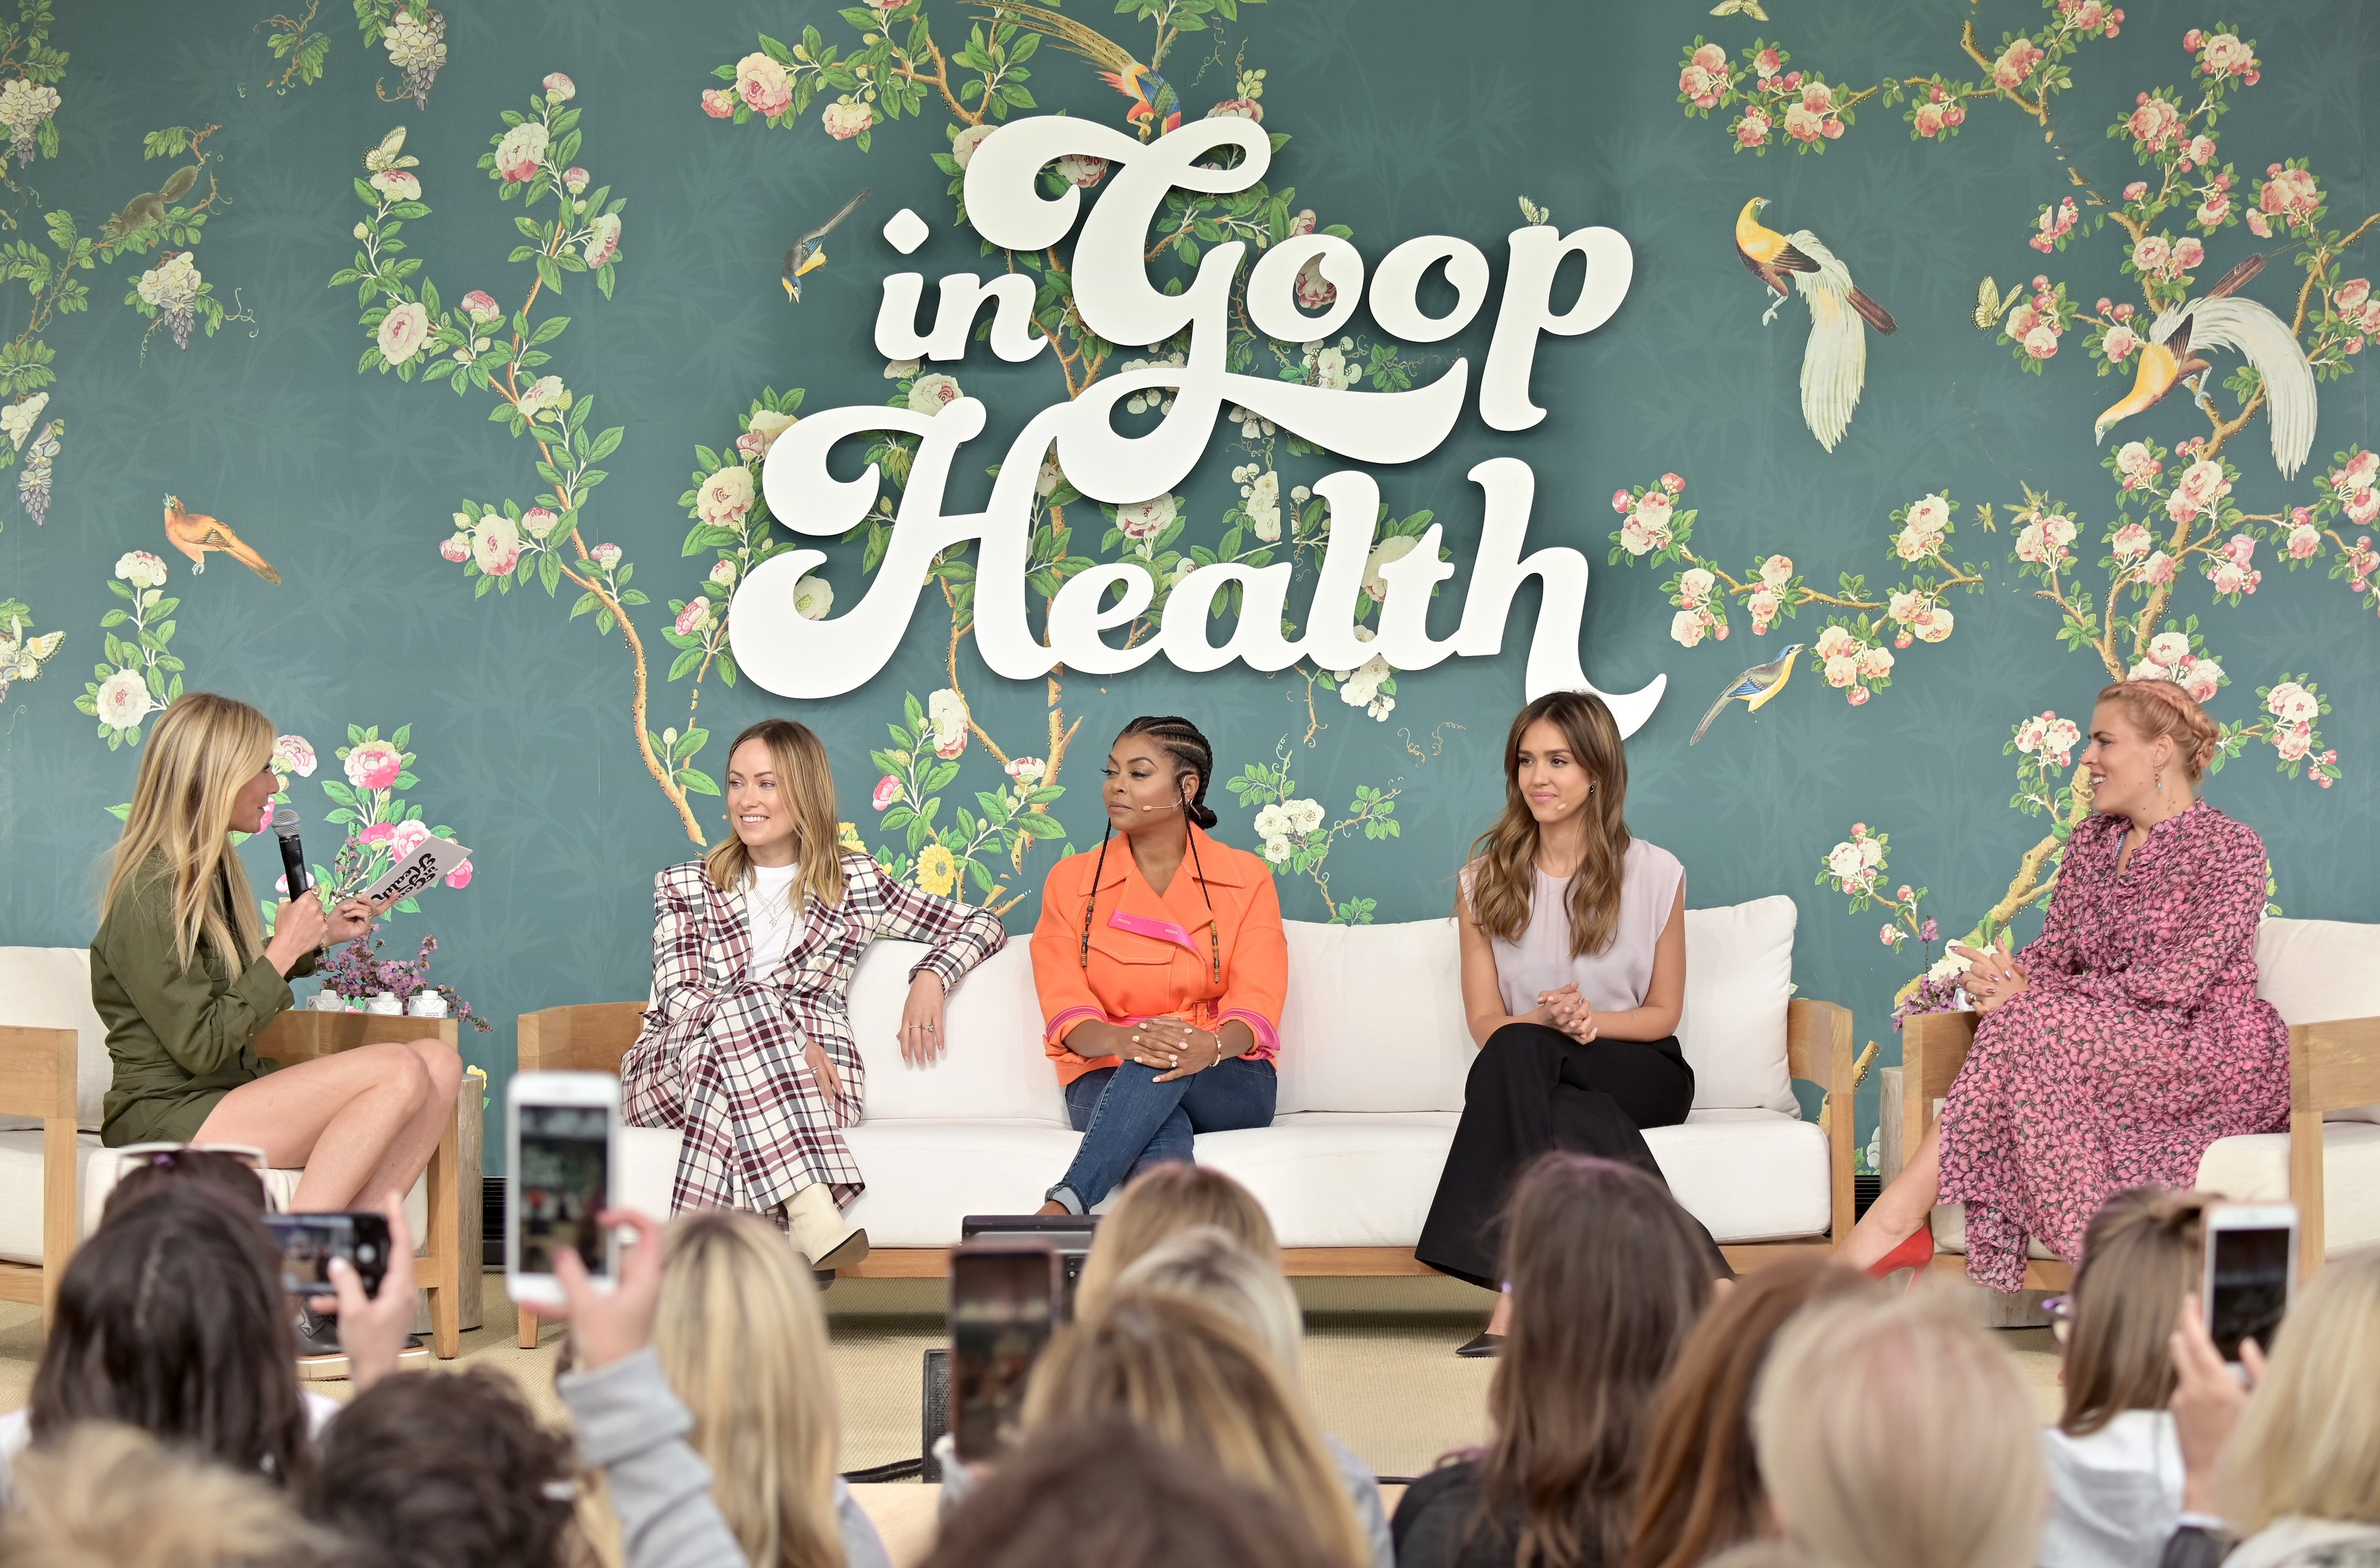 Image Credits: Getty Images / Neilson Barnard | (L-R) goop CEO Gwyneth Paltrow, Olivia Wilde, Taraji P. Henson, Jessica Alba and Busy Philipps speak onstage at In goop Health Summit Los Angeles 2019 at Rolling Greens Nursery on May 18, 2019 in Los Angeles, California.